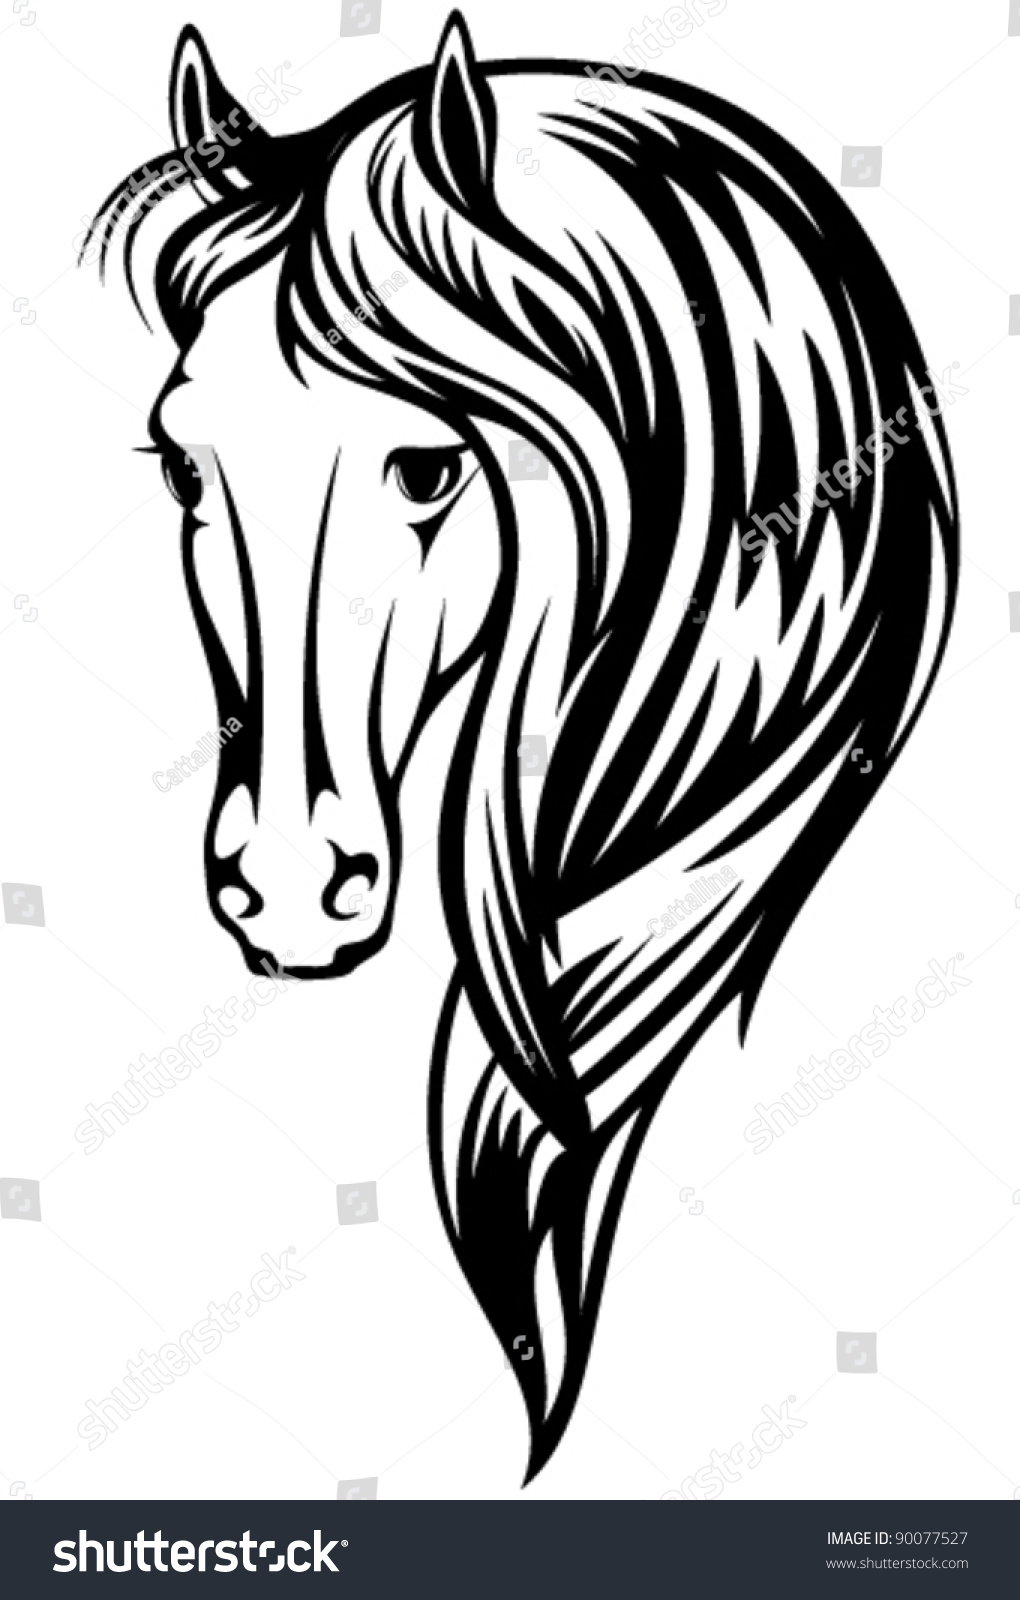 beautiful horse vector illustration black and white head